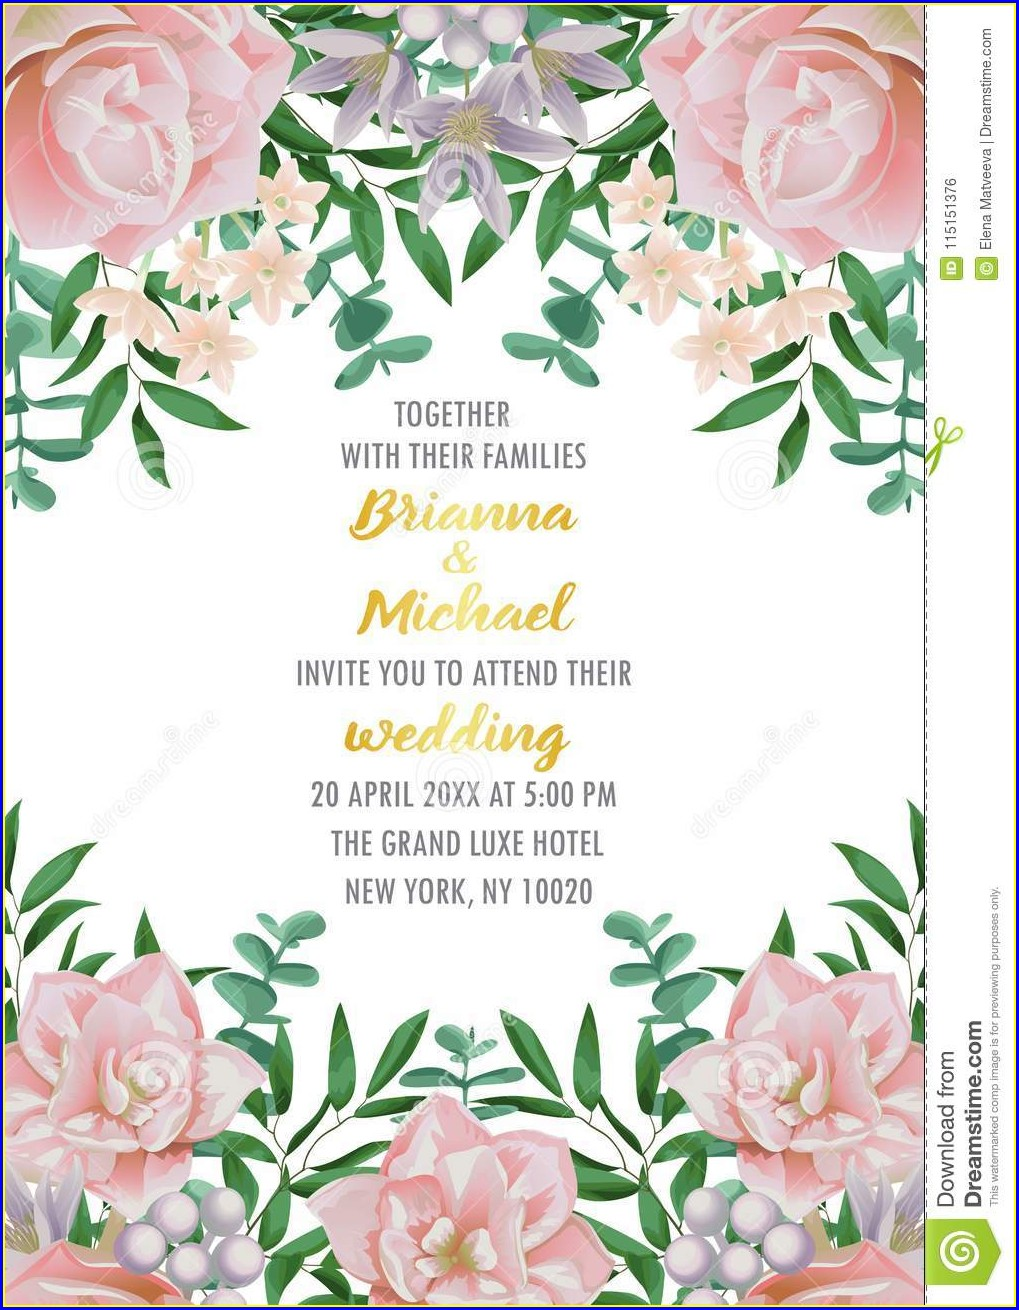 Blank Pink Floral Invitation Template